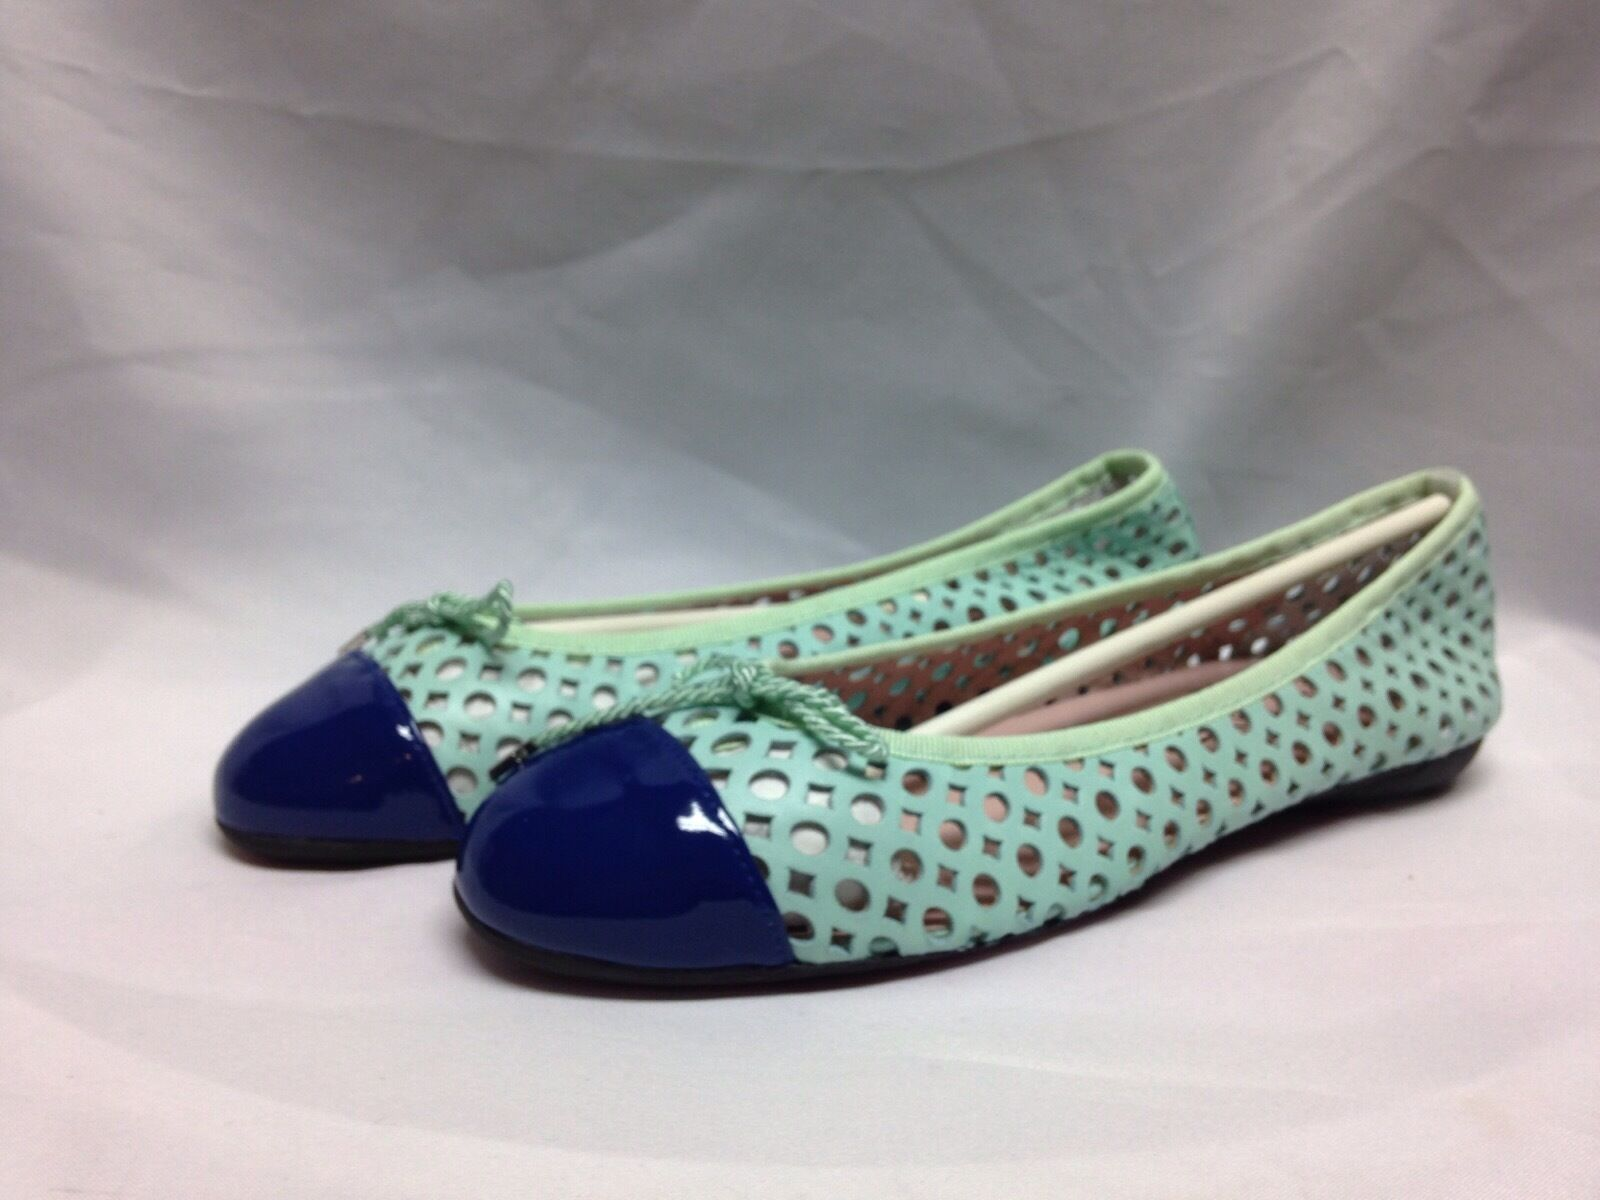 Paul Brandy Mayer Attitudes Brandy Paul Balet  Flat 7.5 M Patent Azul/Aqua New w/ Box a00847